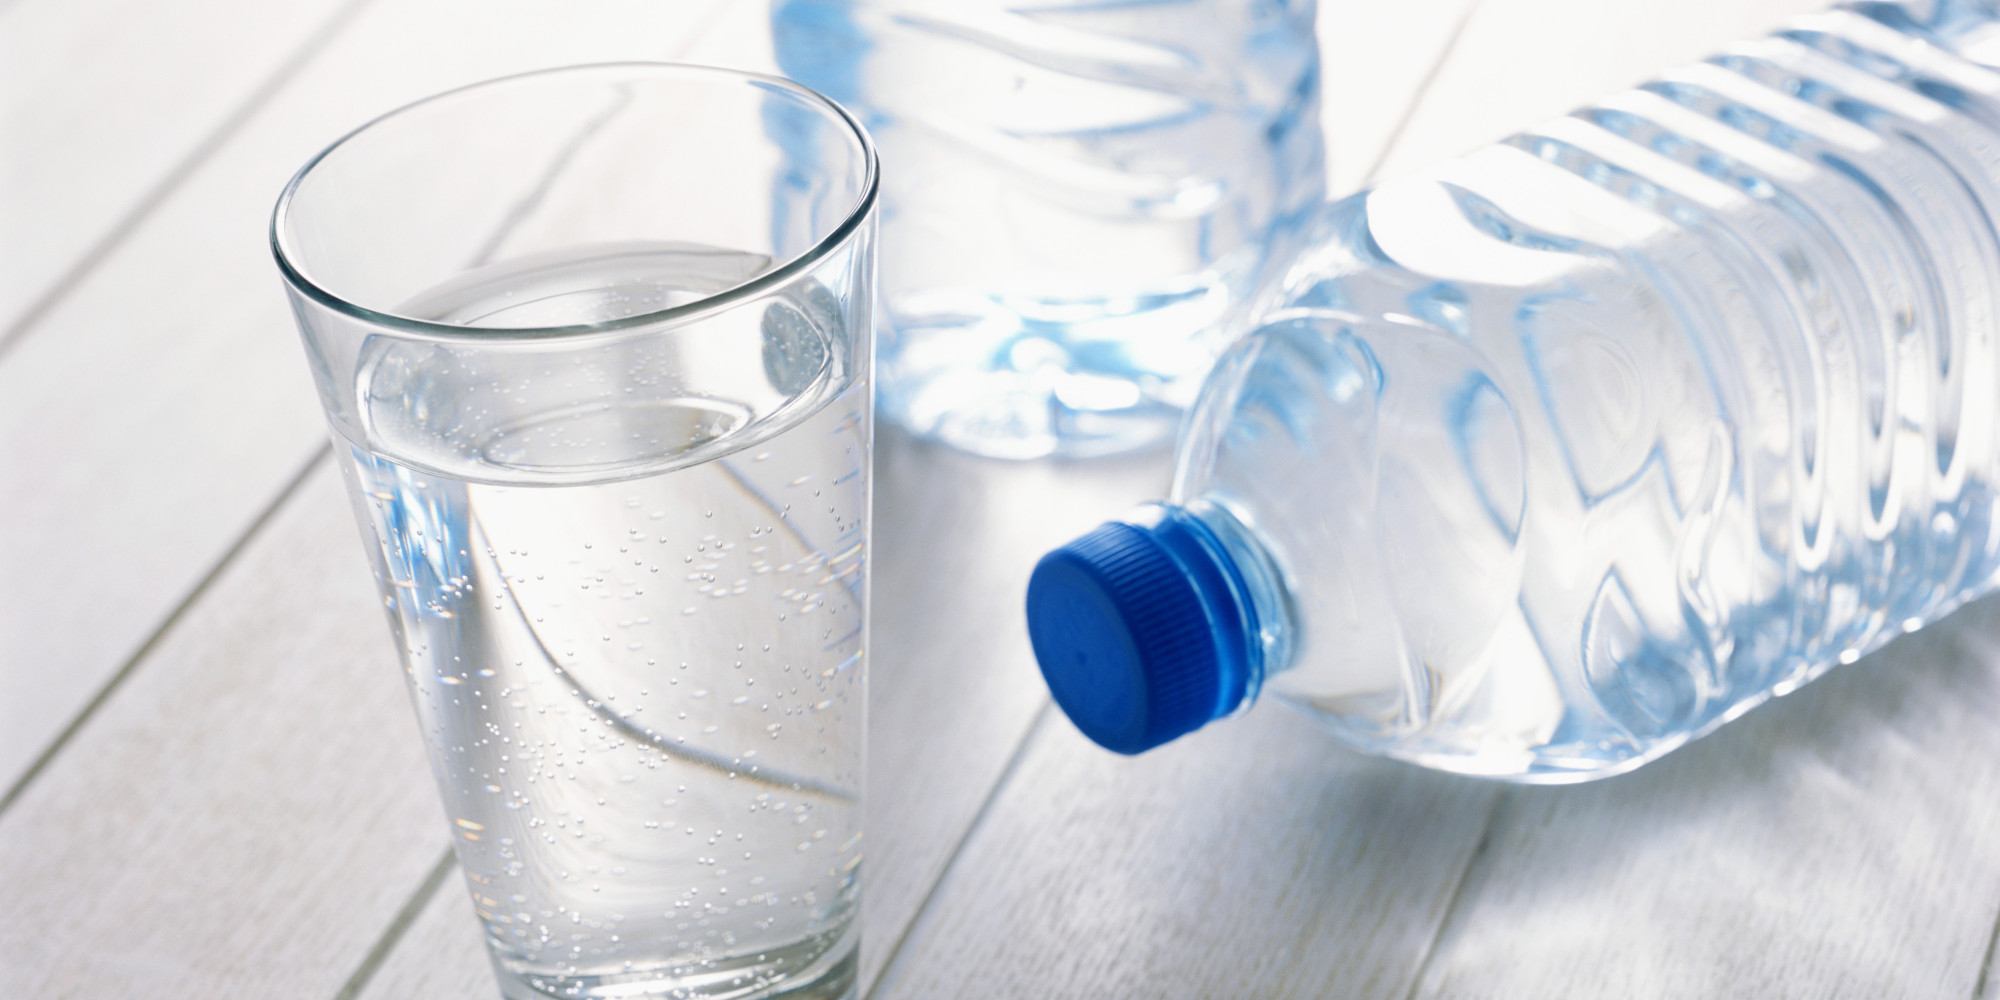 14 Brands Of Bottled Water Voluntarily Recalled Due To